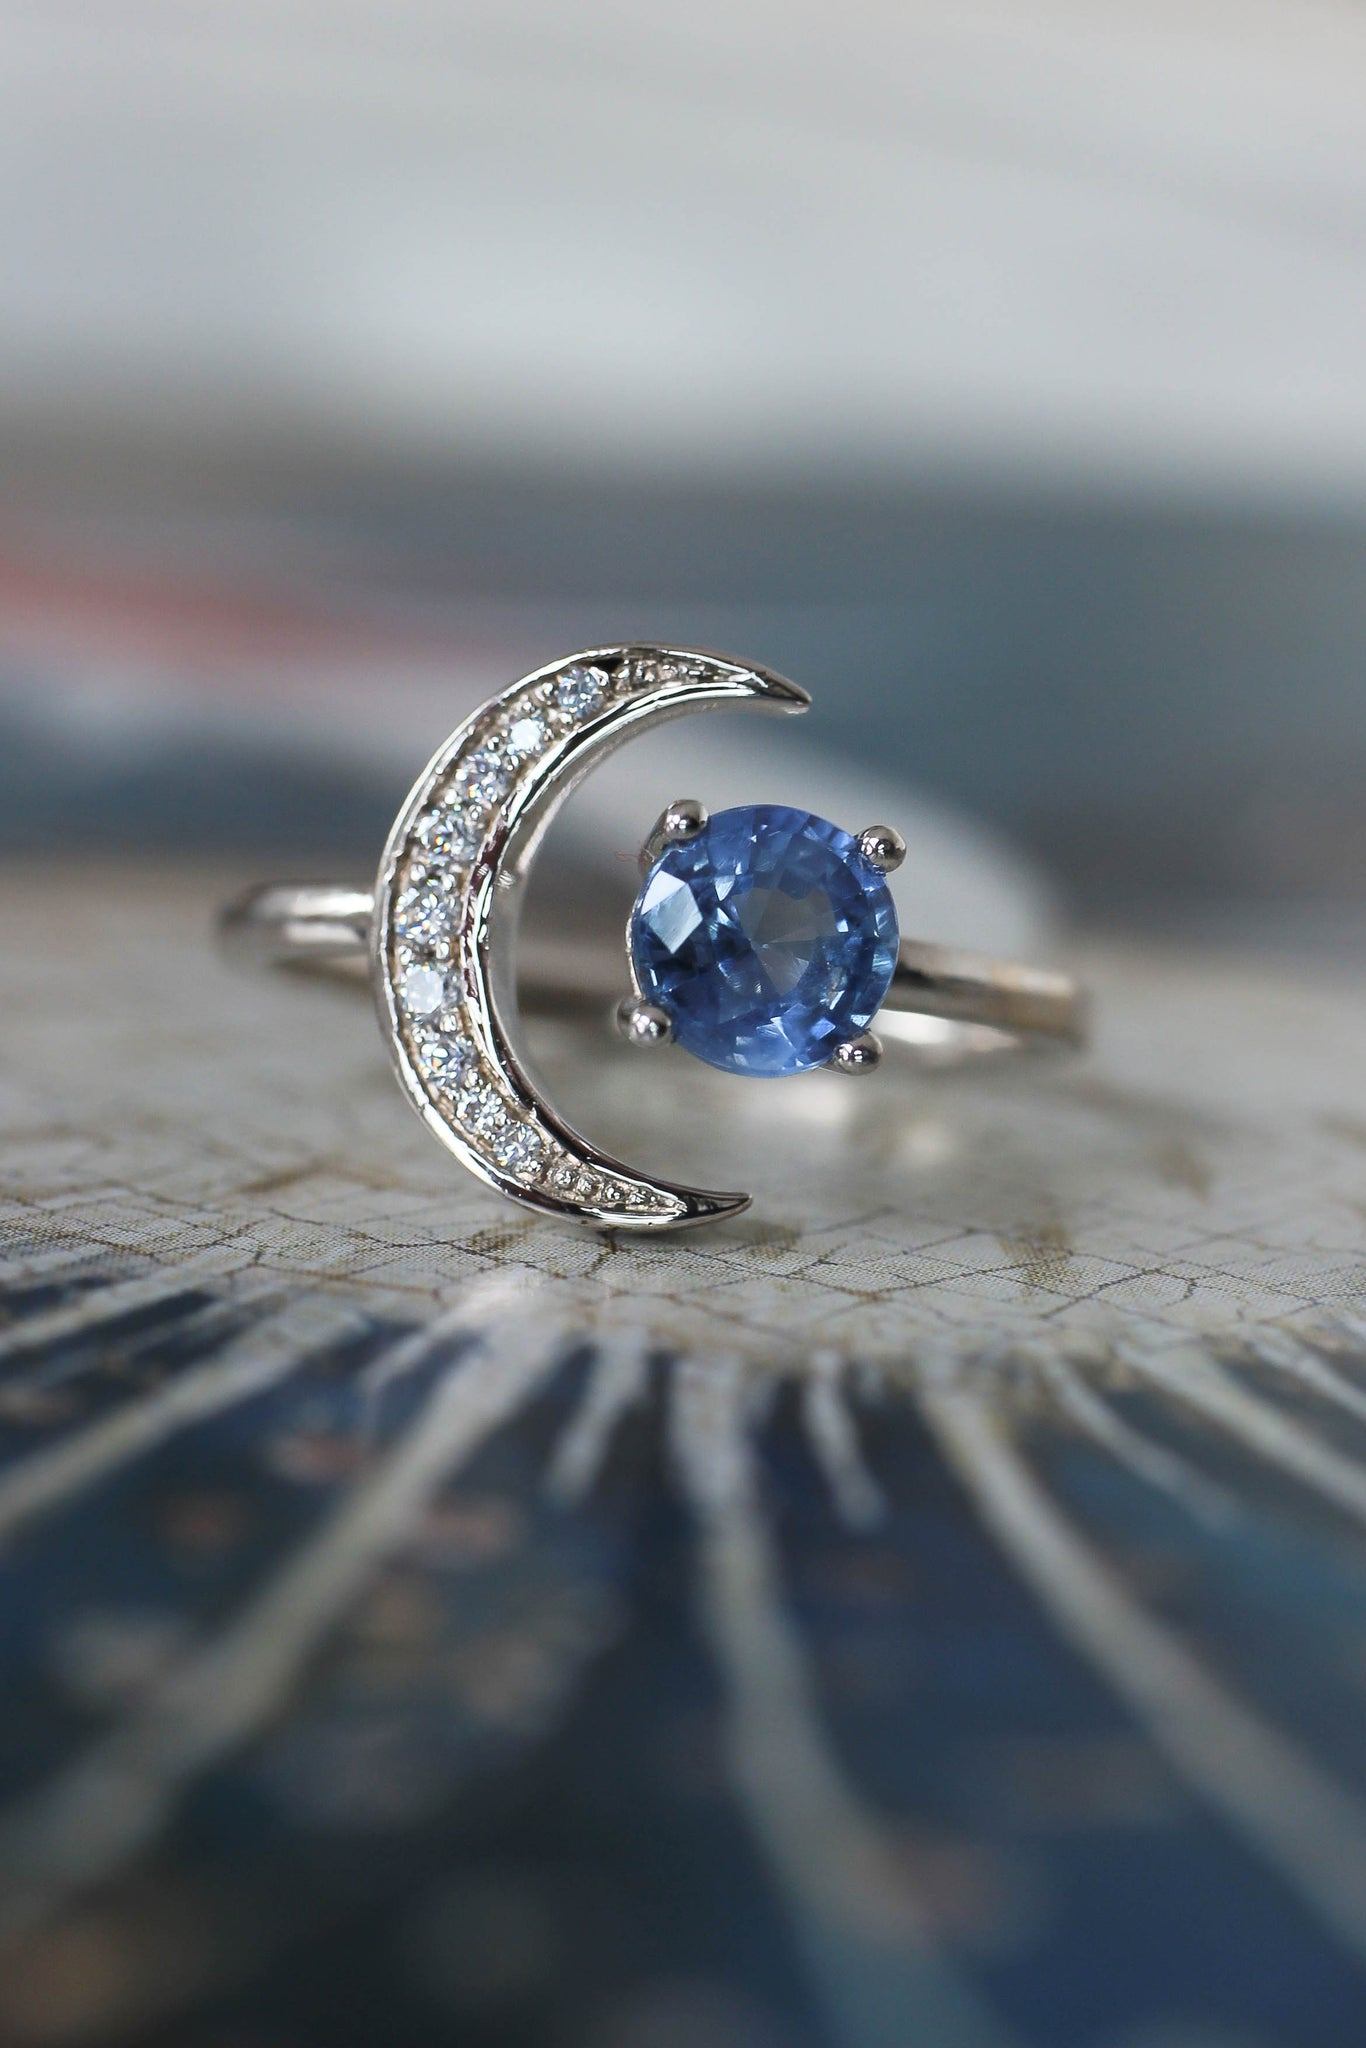 Crescent moon engagement ring with sapphire and diamonds - Eden Garden Jewelry